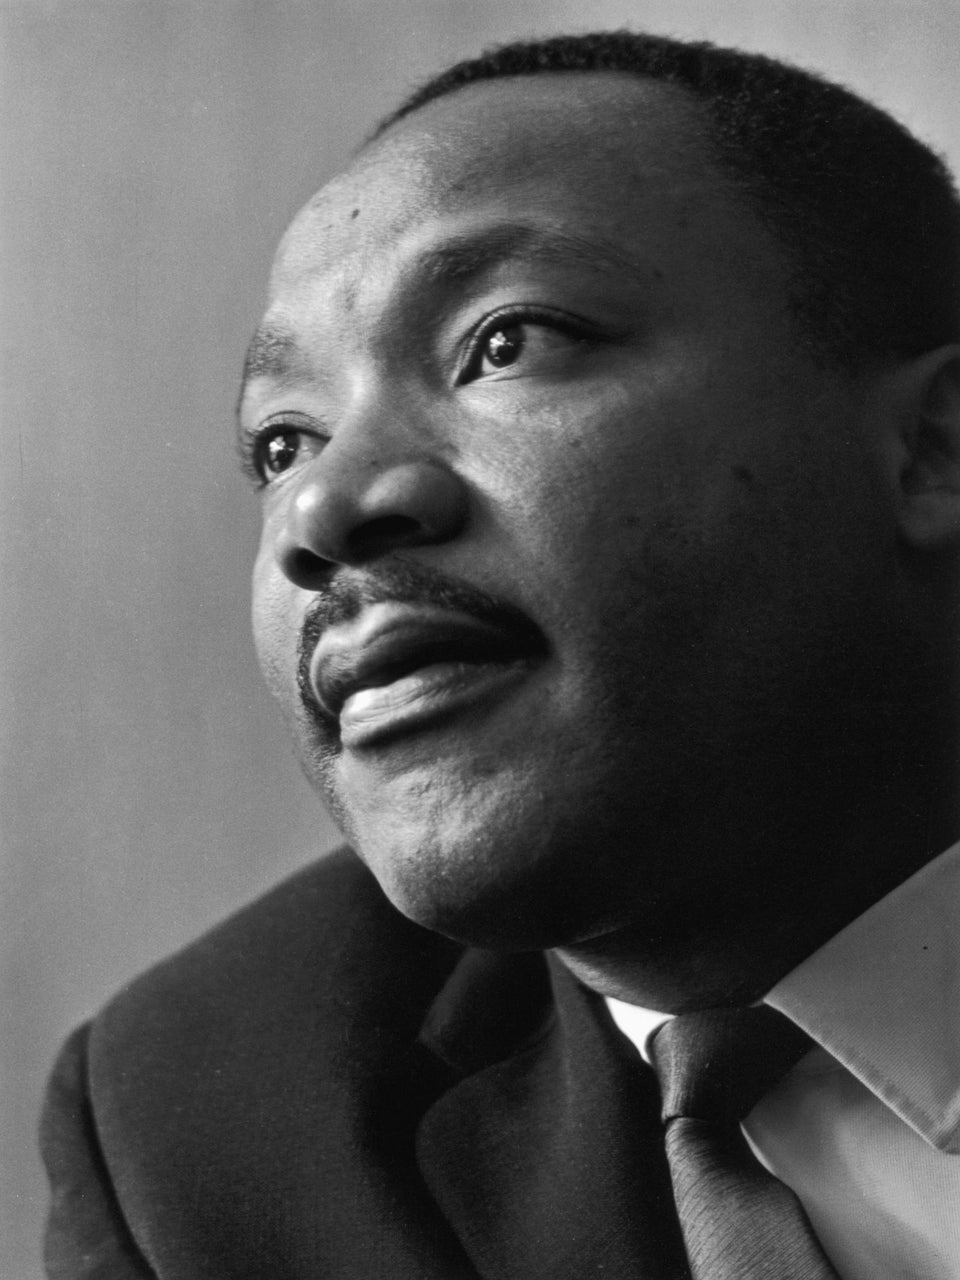 The JFK Files Are Filled WithMartin Luther King, Jr. Lies Created By The FBI